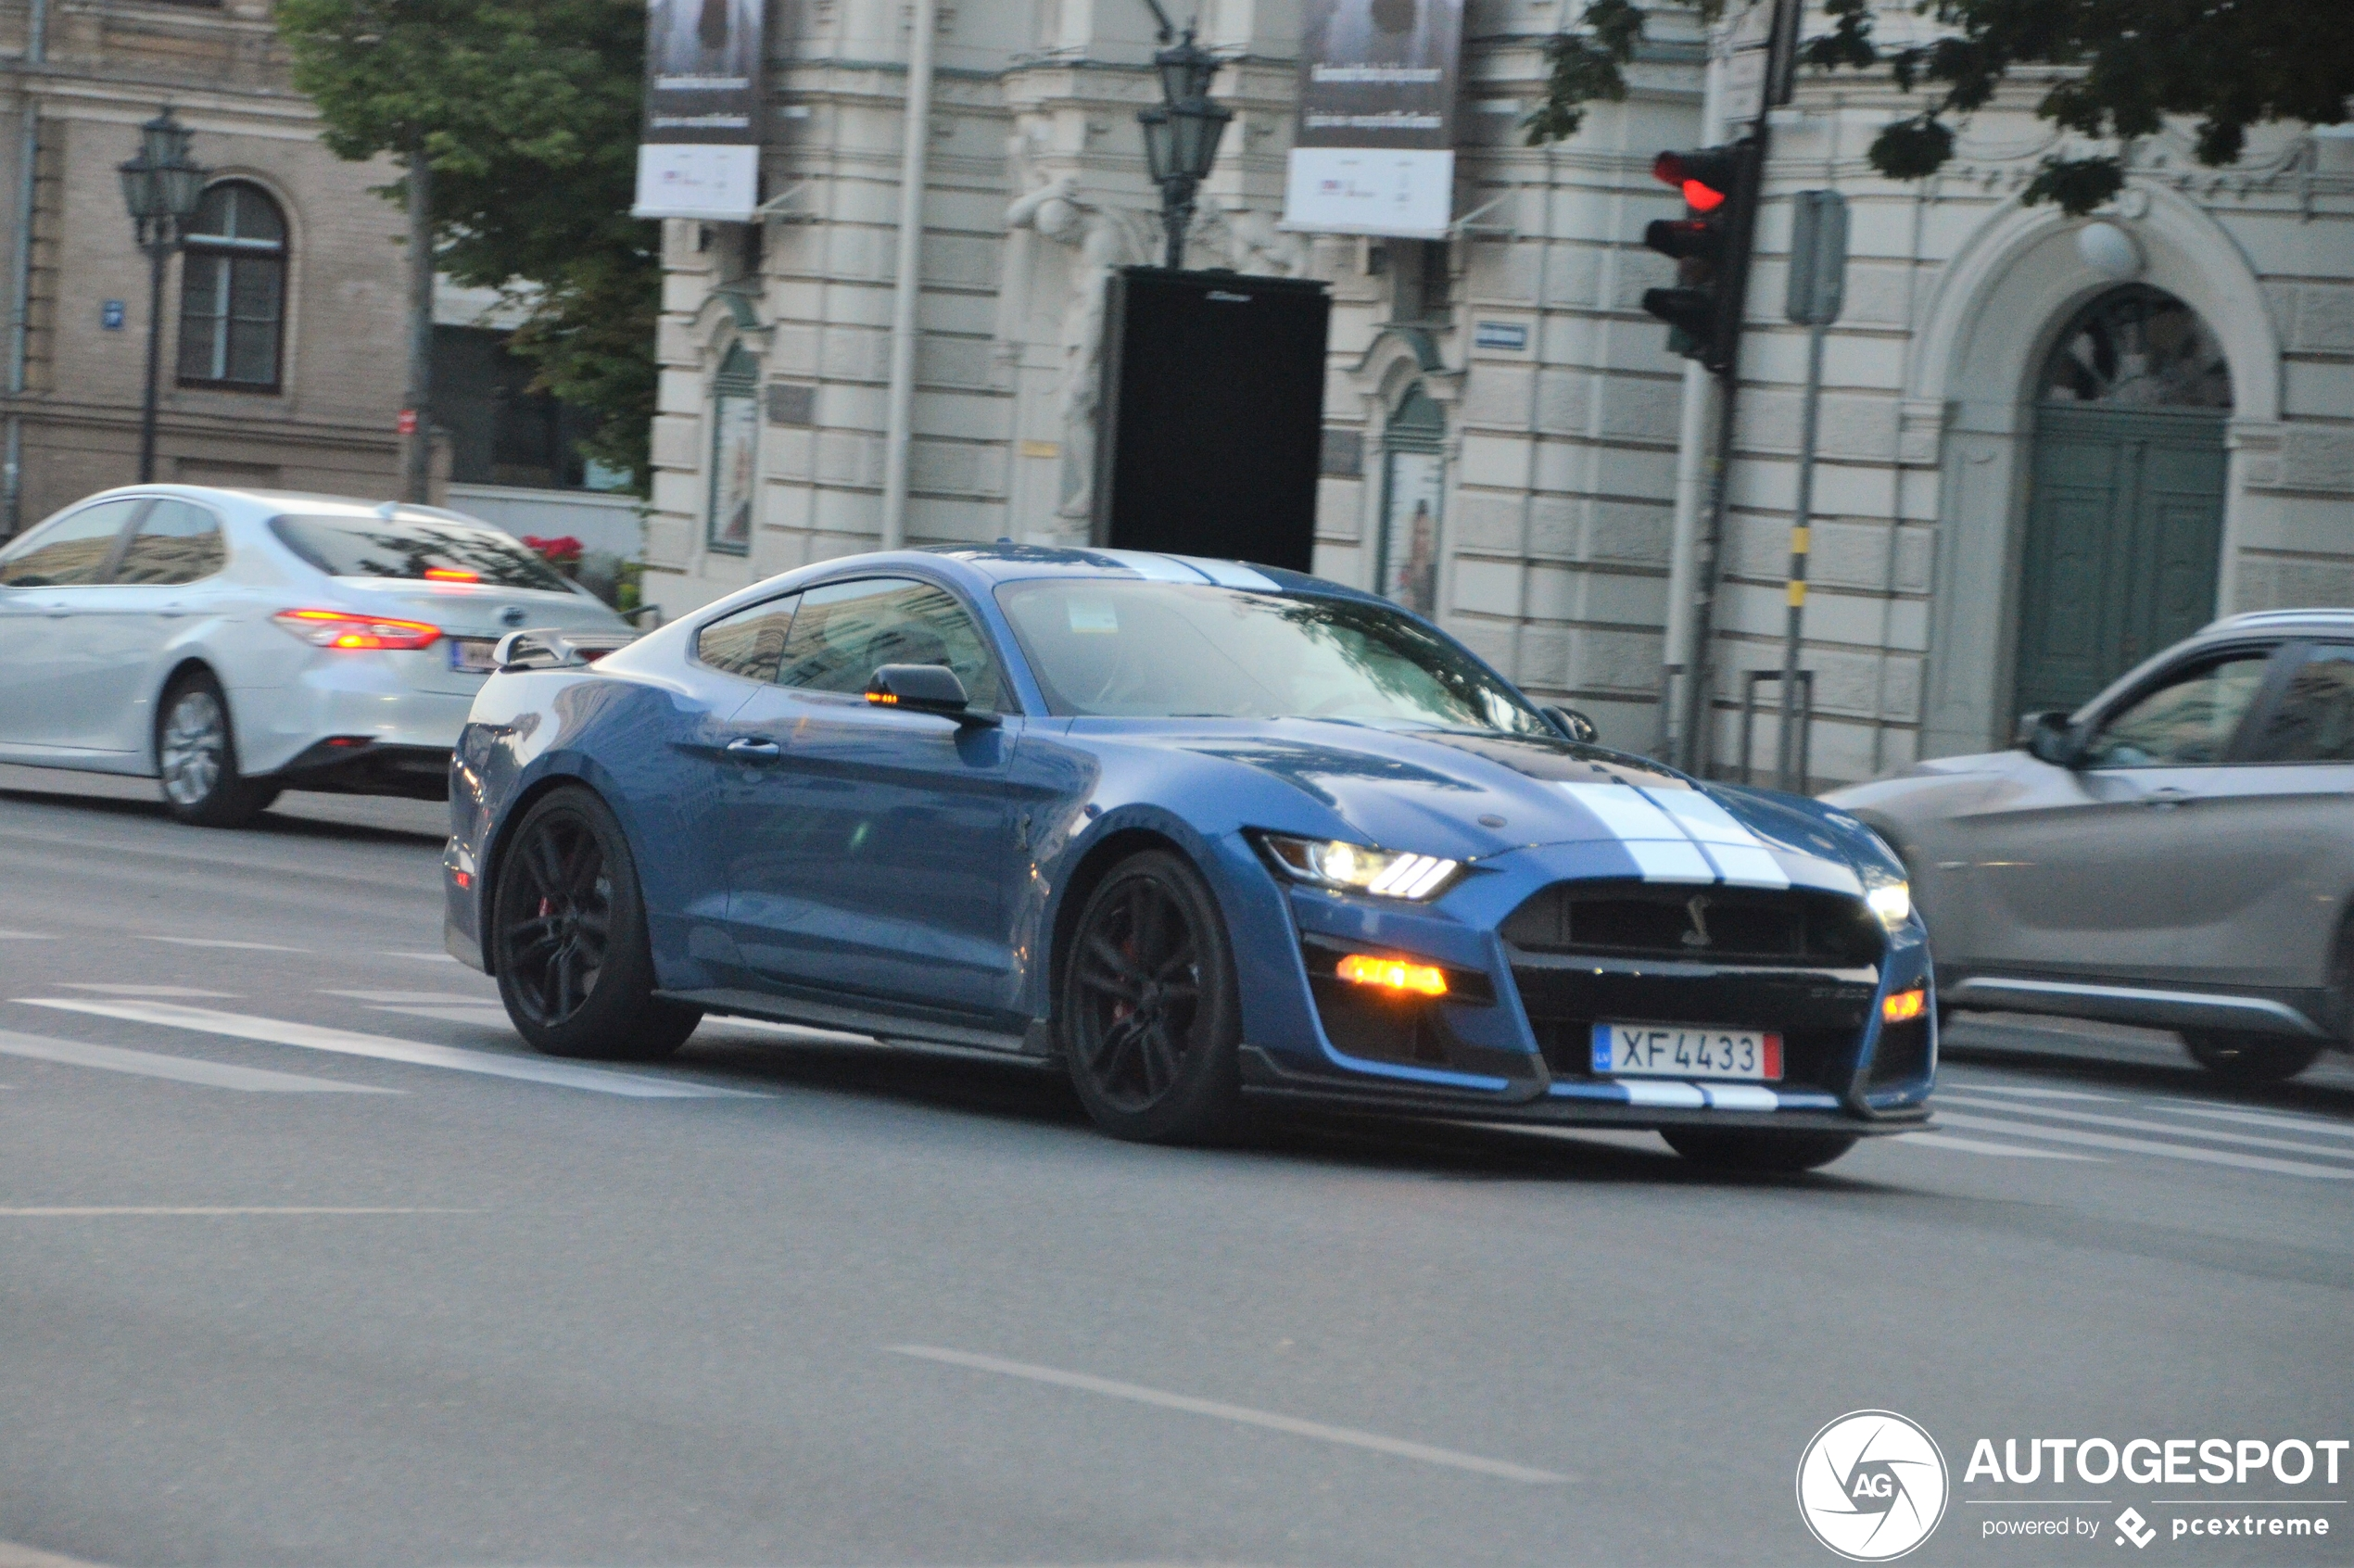 FordMustang Shelby GT500 2020